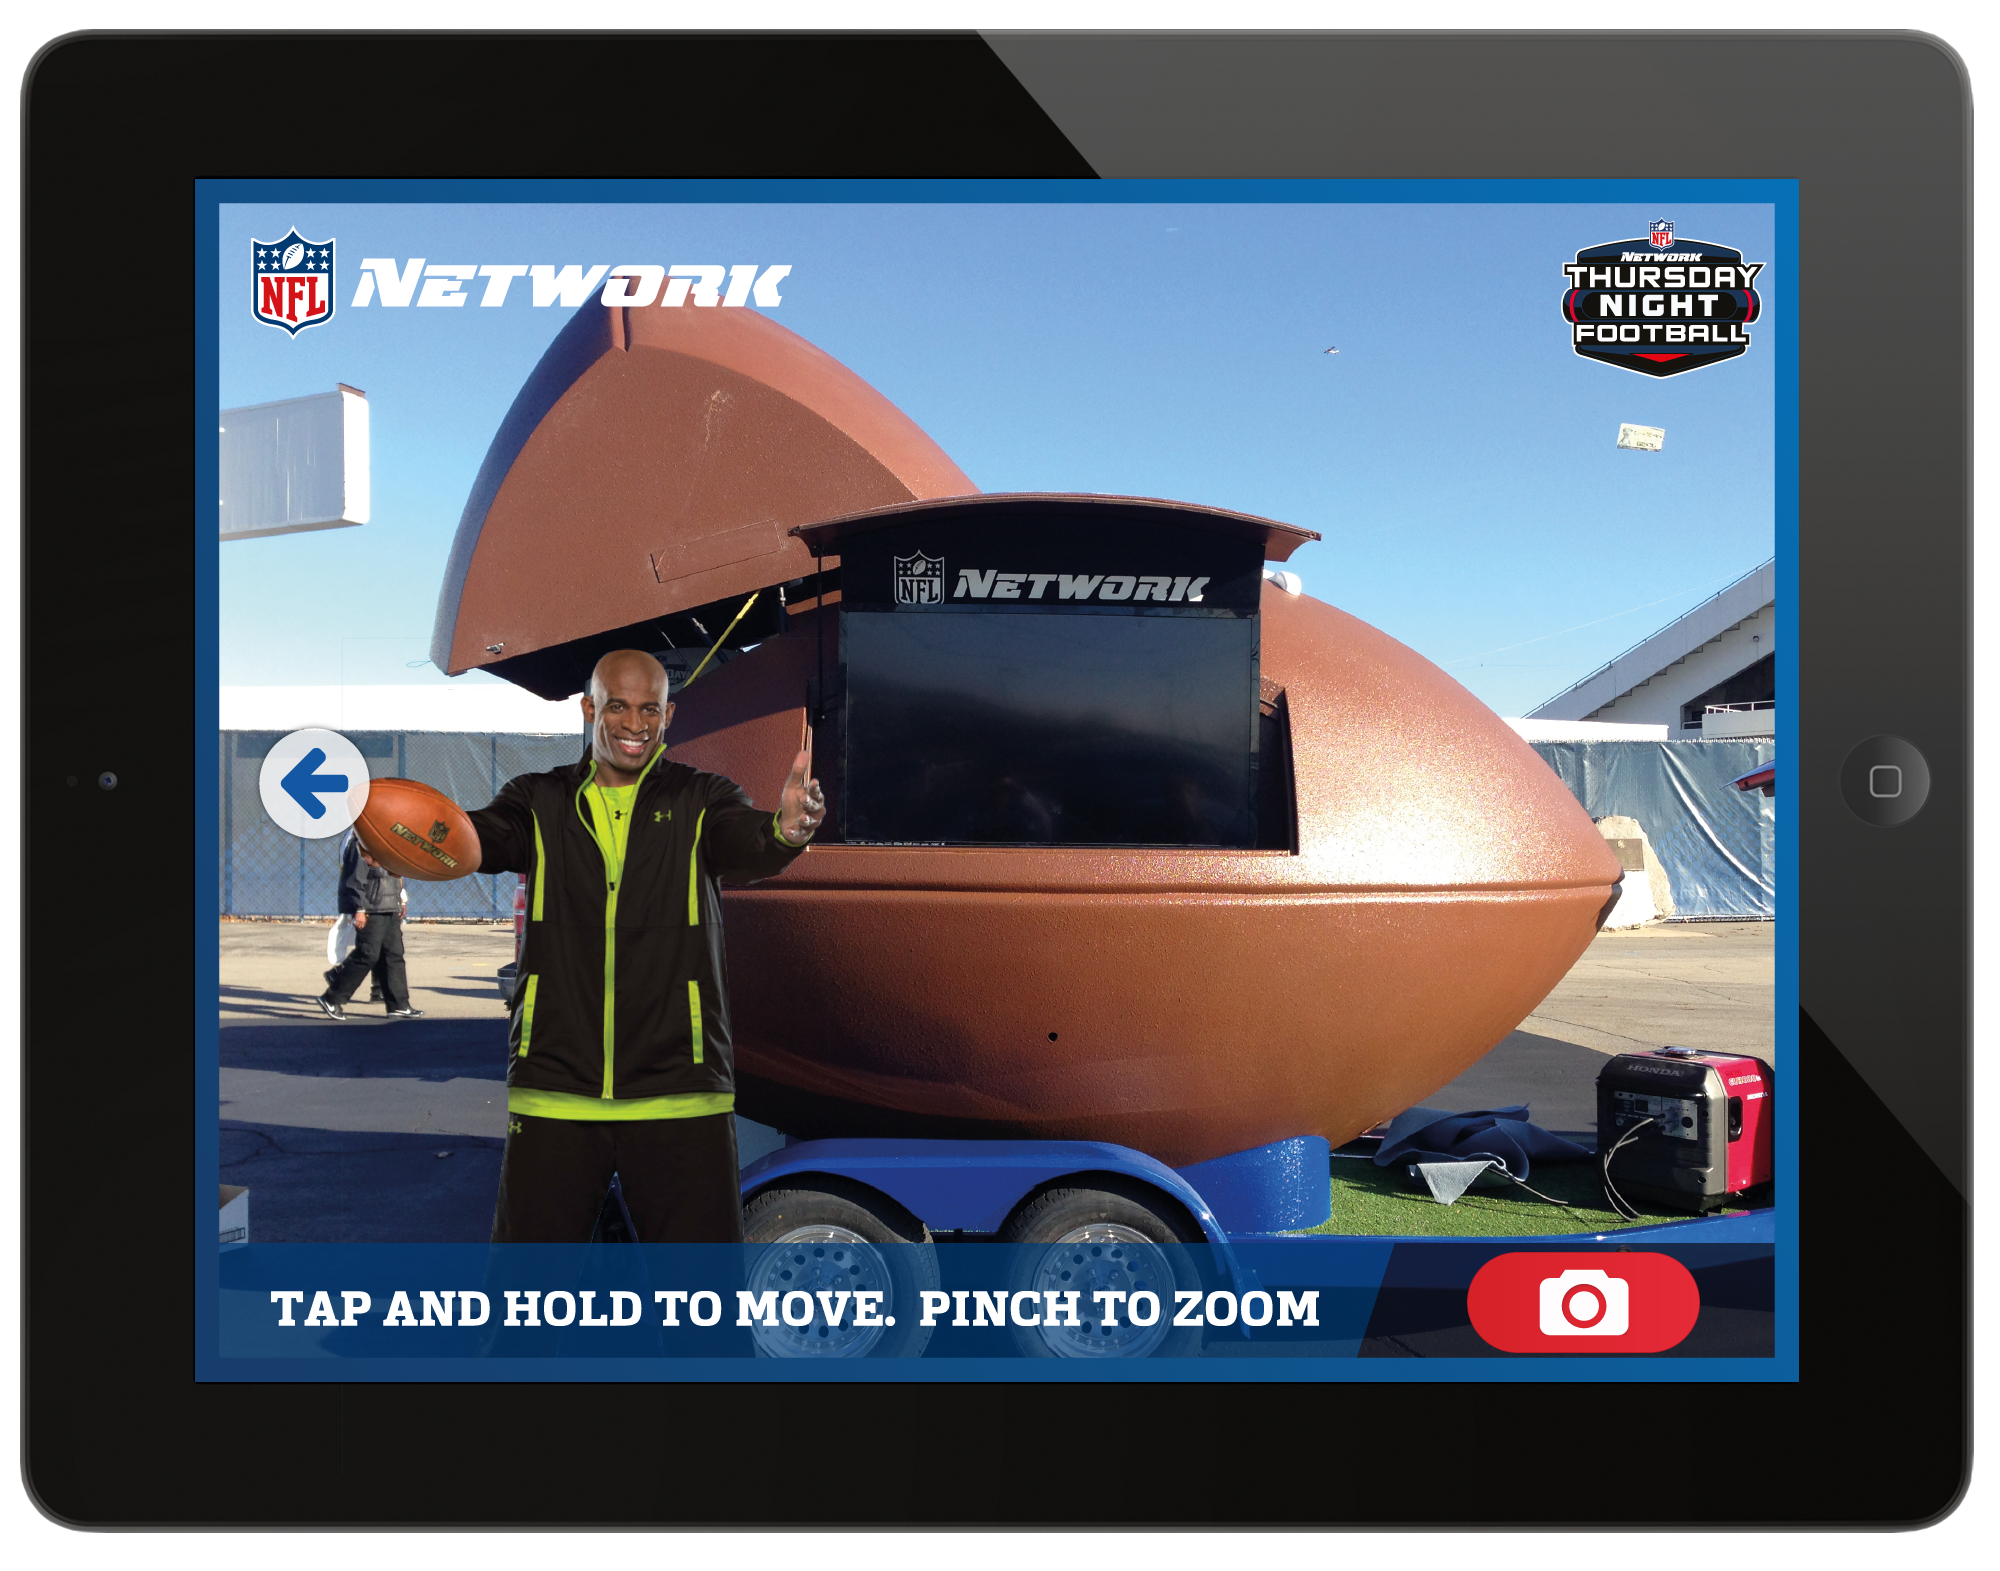 nfl_screen2